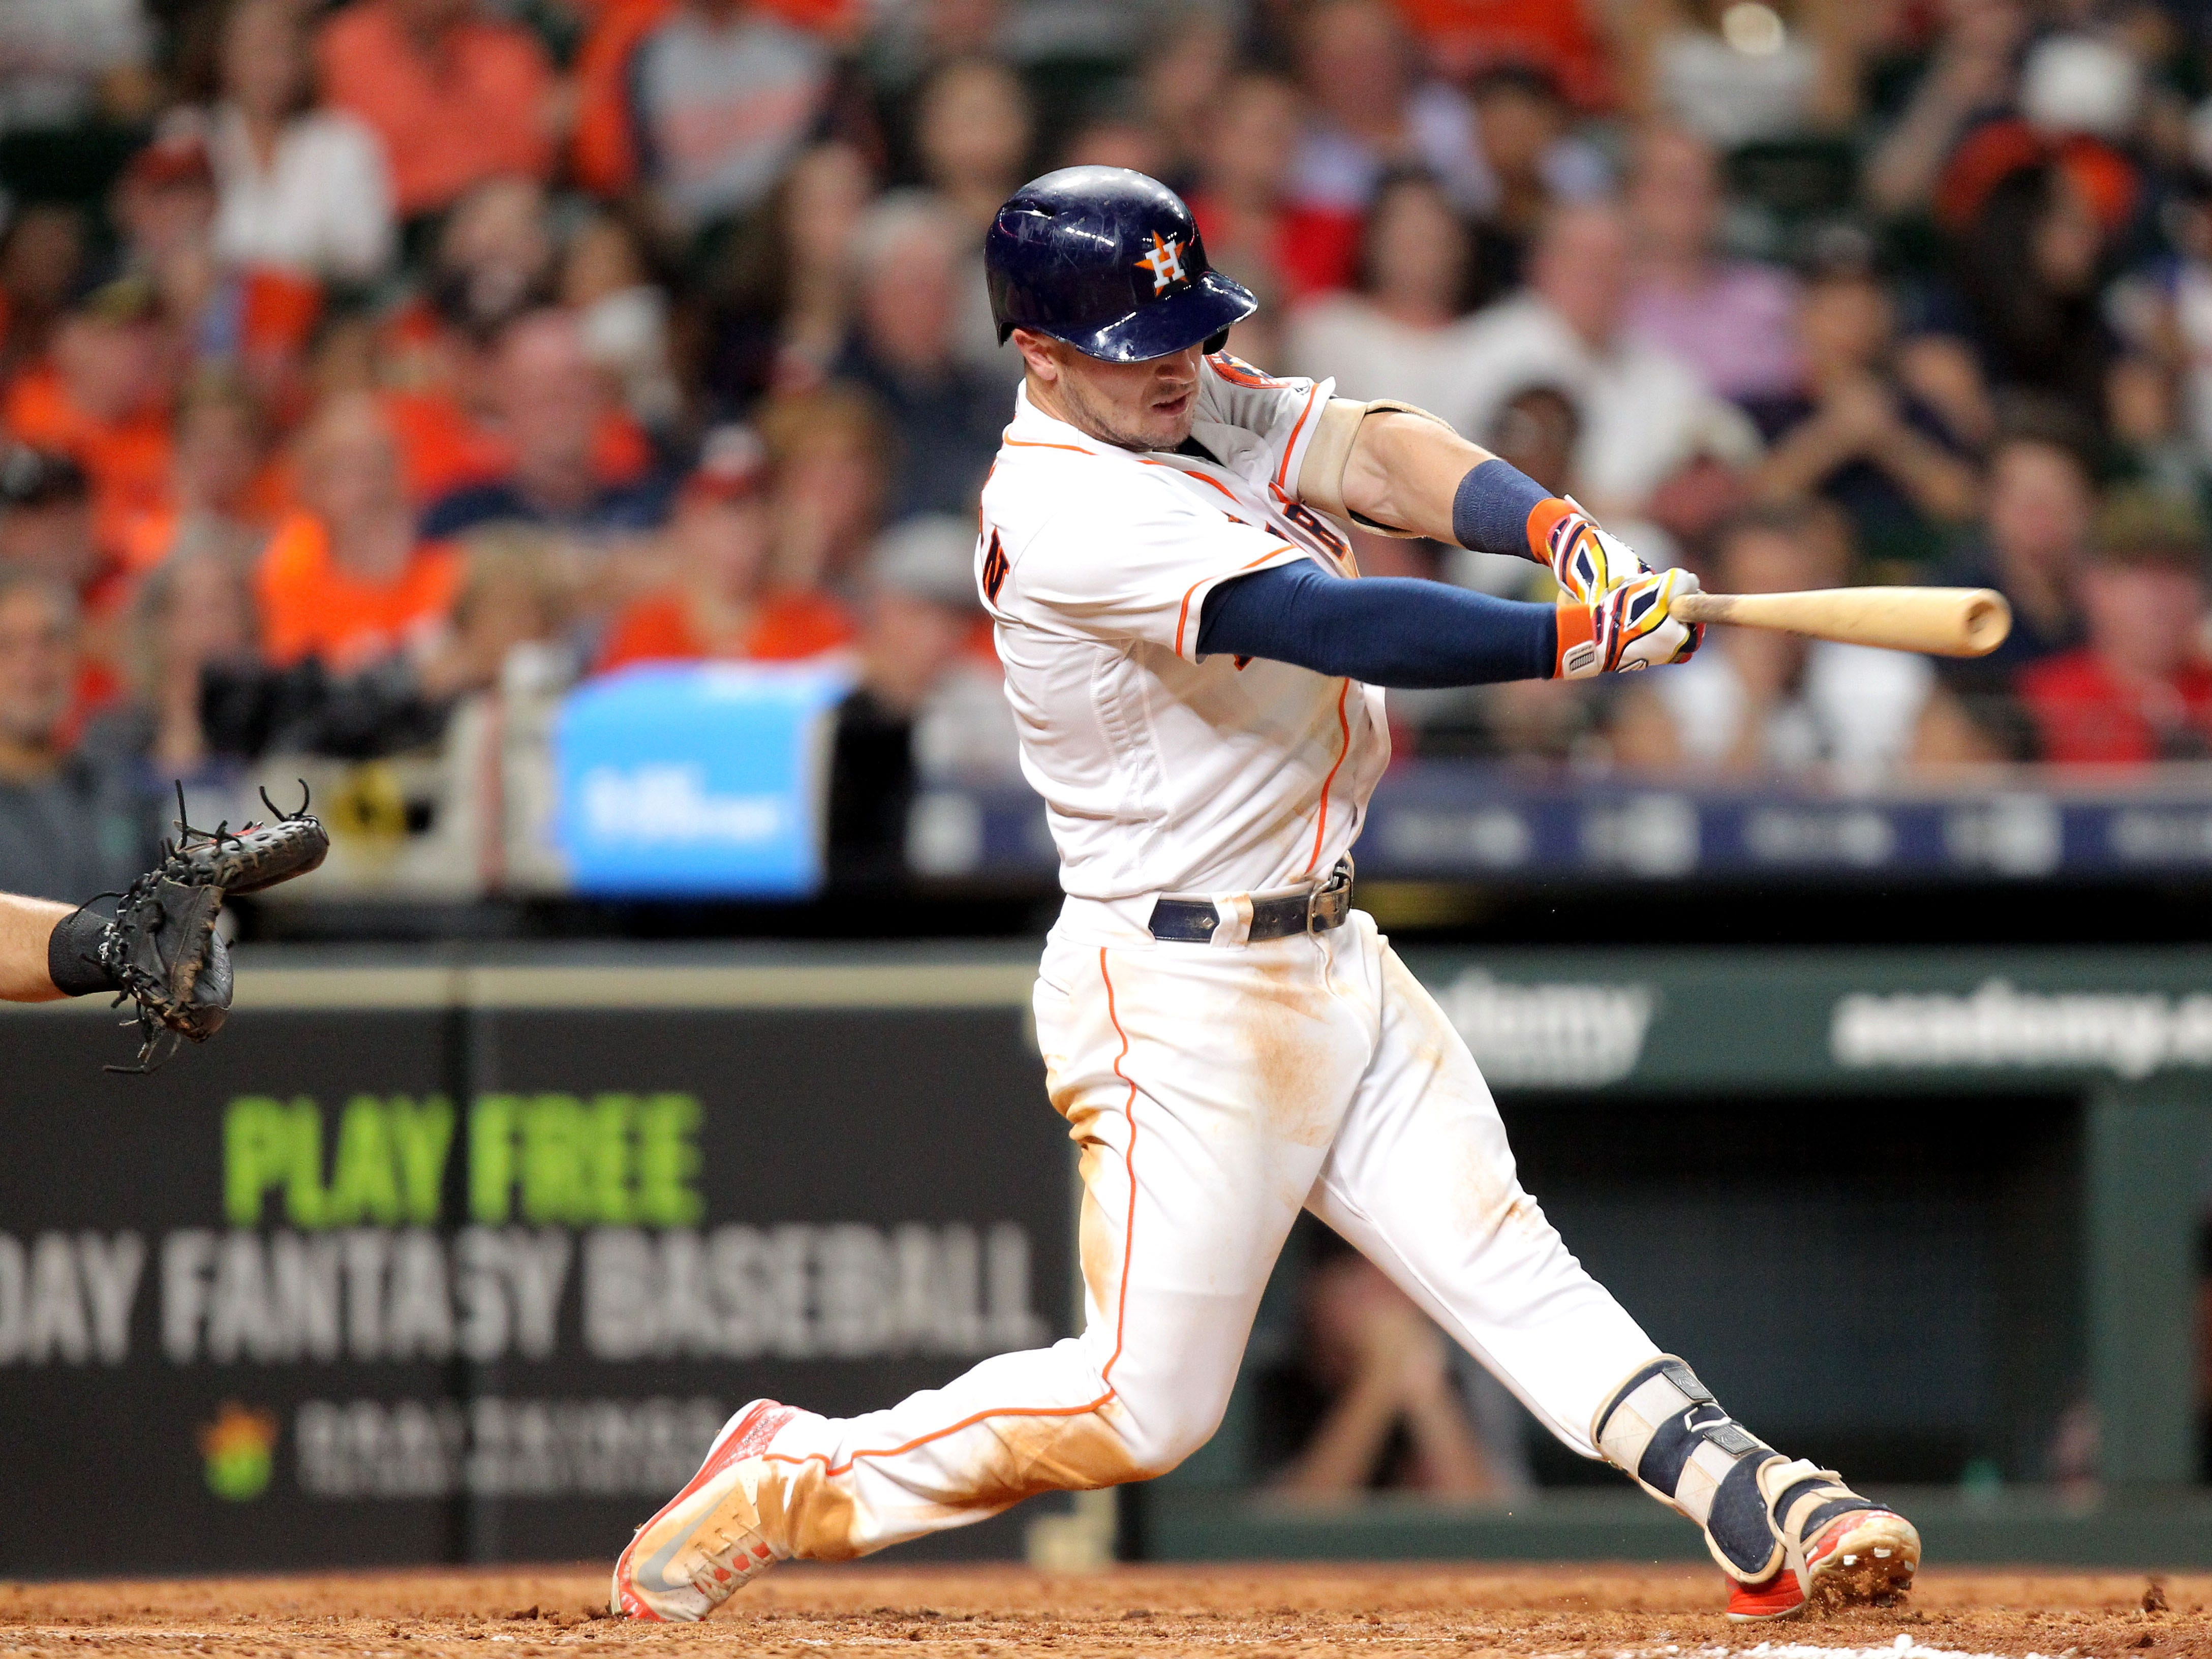 Sep 15, 2018; Houston, TX, USA; Houston Astros third baseman Alex Bregman (2) hits an RBI infield single against the Arizona Diamondbacks during the sixth inning at Minute Maid Park. Mandatory Credit: Erik Williams-USA TODAY Sports